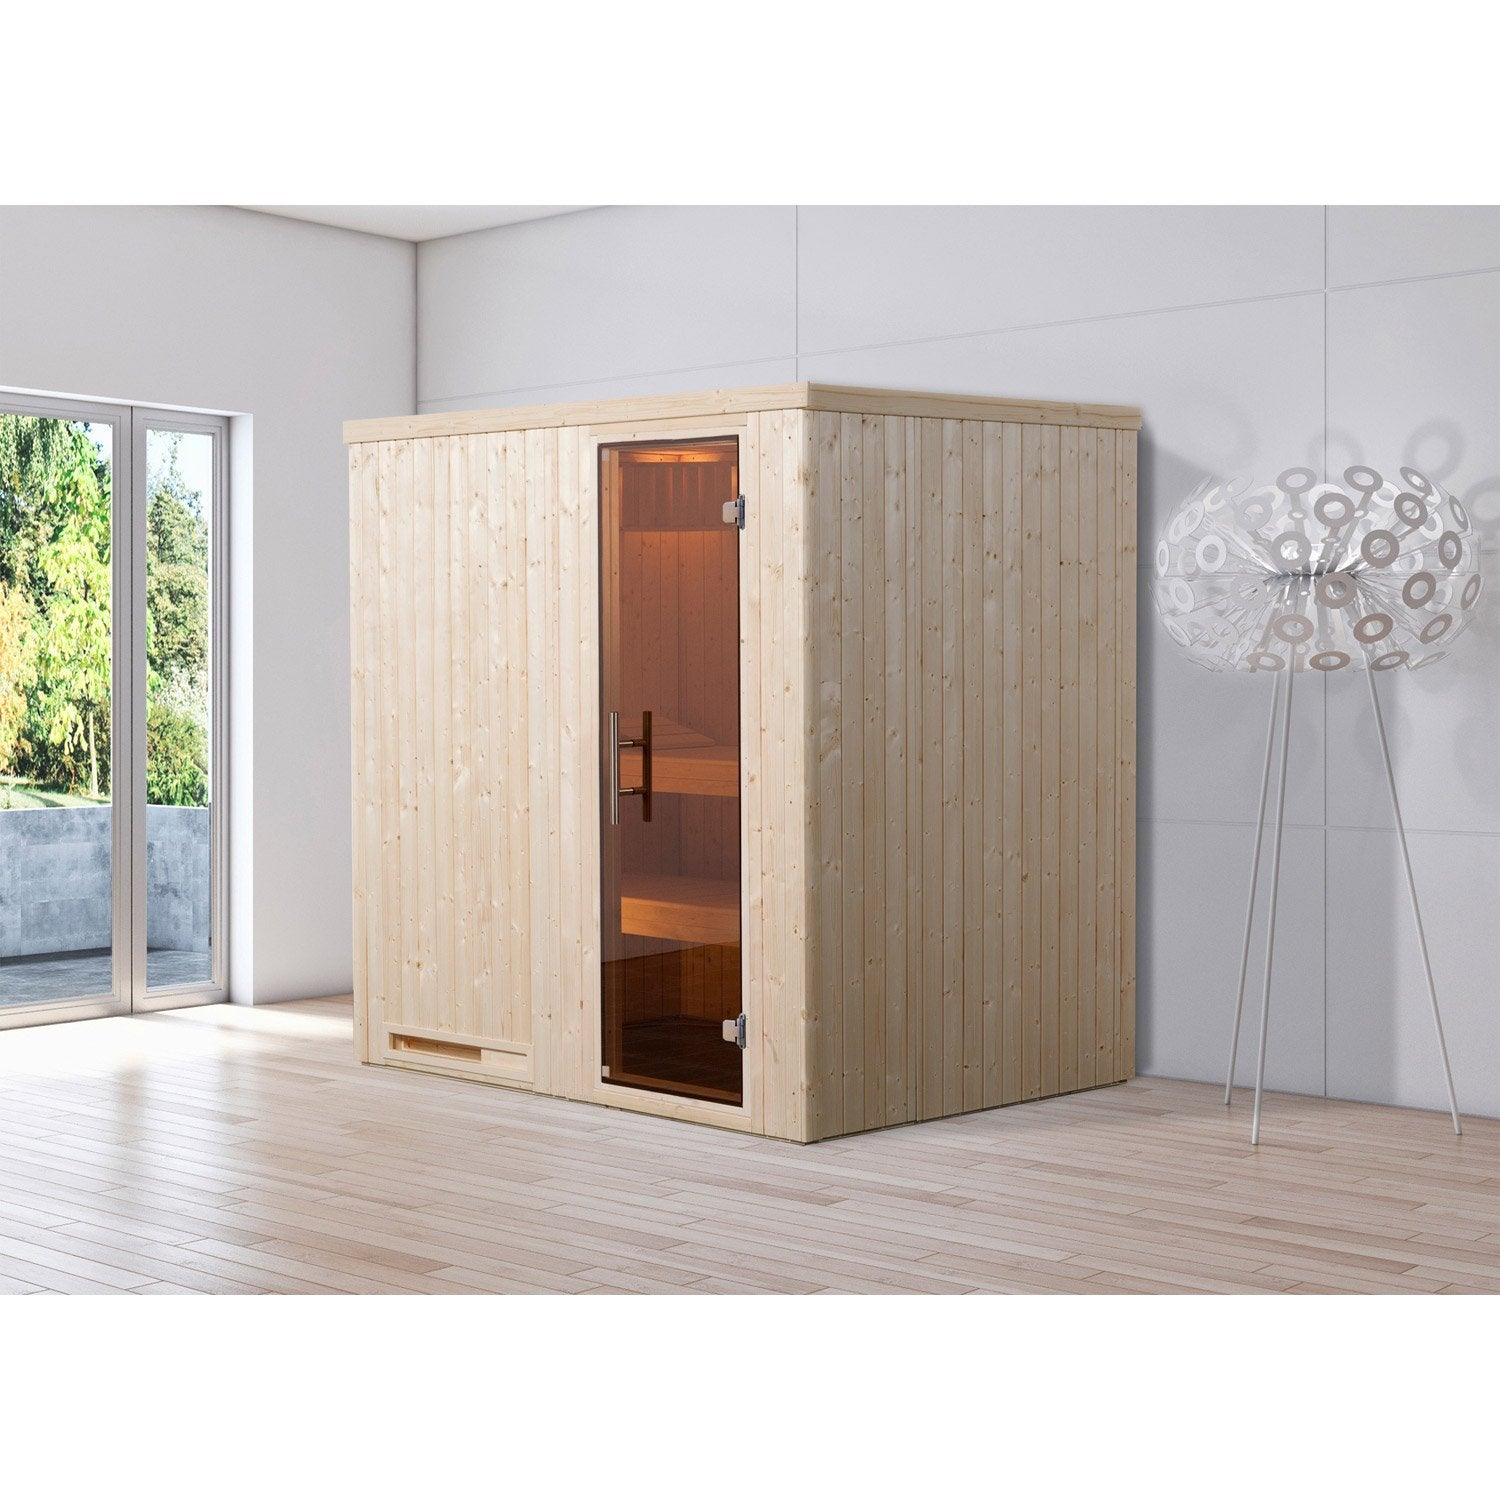 sauna traditionnel 2 places mod le kasala 3 weka livraison incluse leroy merlin. Black Bedroom Furniture Sets. Home Design Ideas